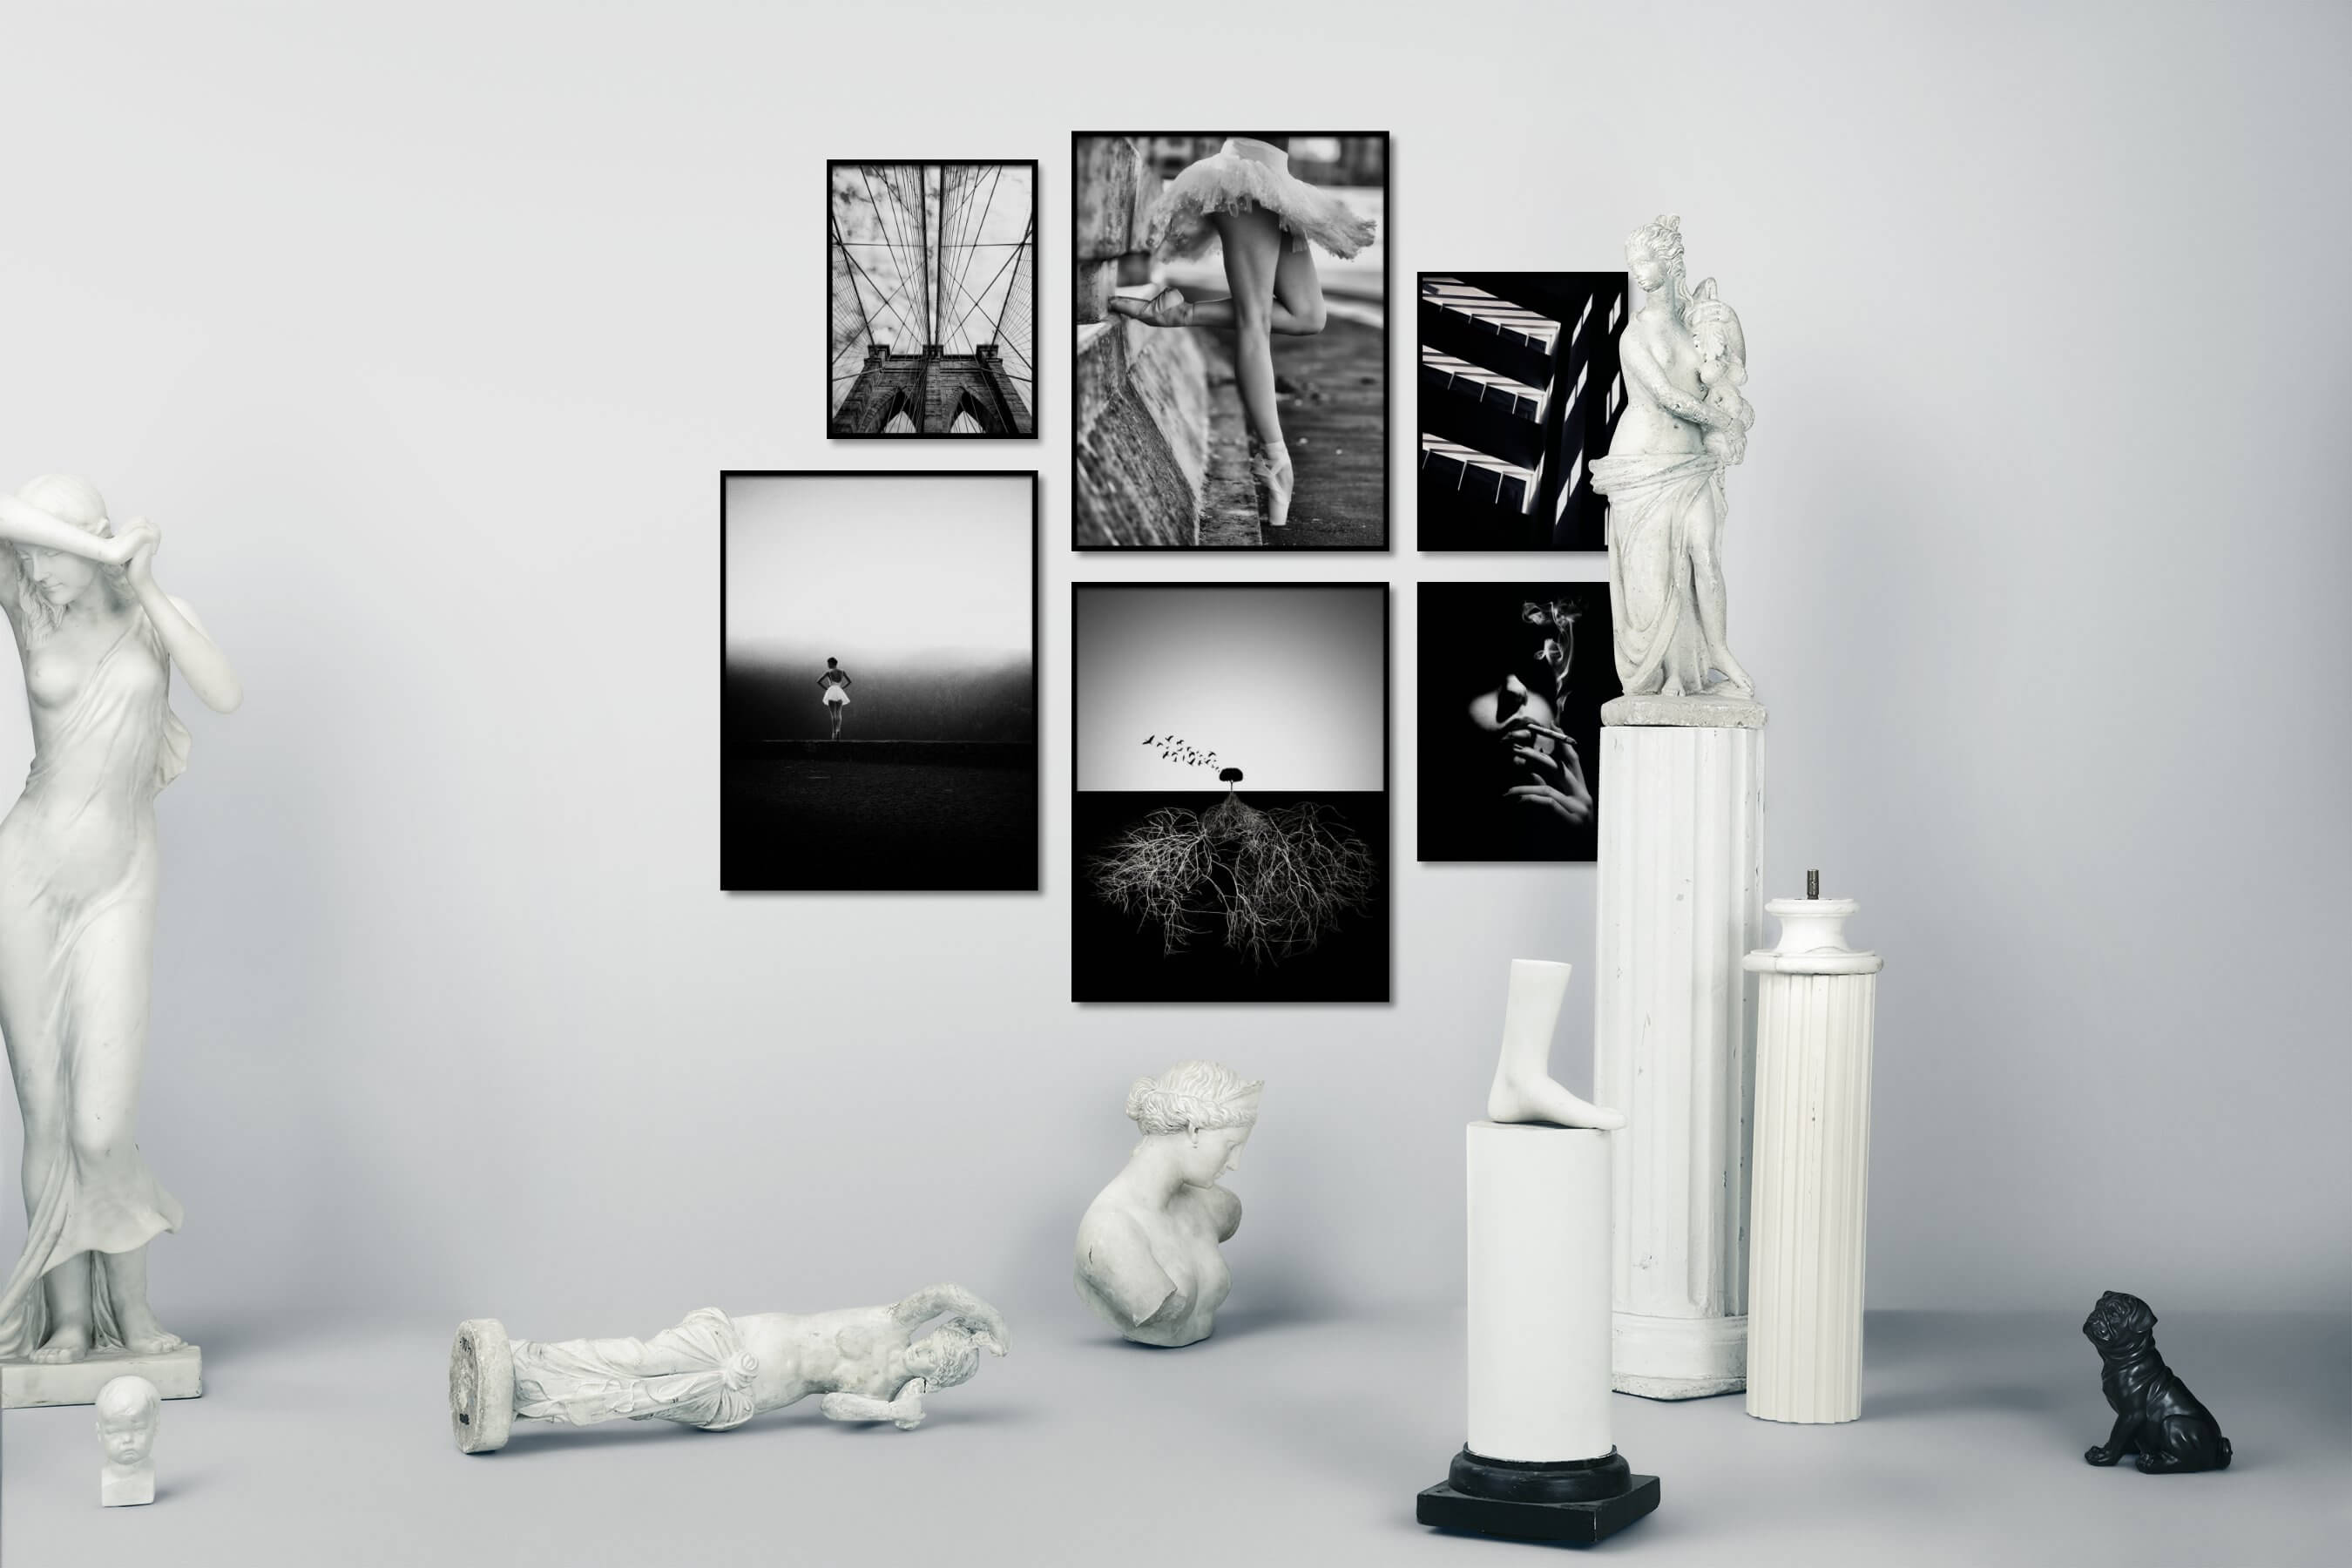 Gallery wall idea with six framed pictures arranged on a wall depicting Black & White, For the Moderate, City Life, Americana, Fashion & Beauty, Mindfulness, Nature, Dark Tones, and Vintage